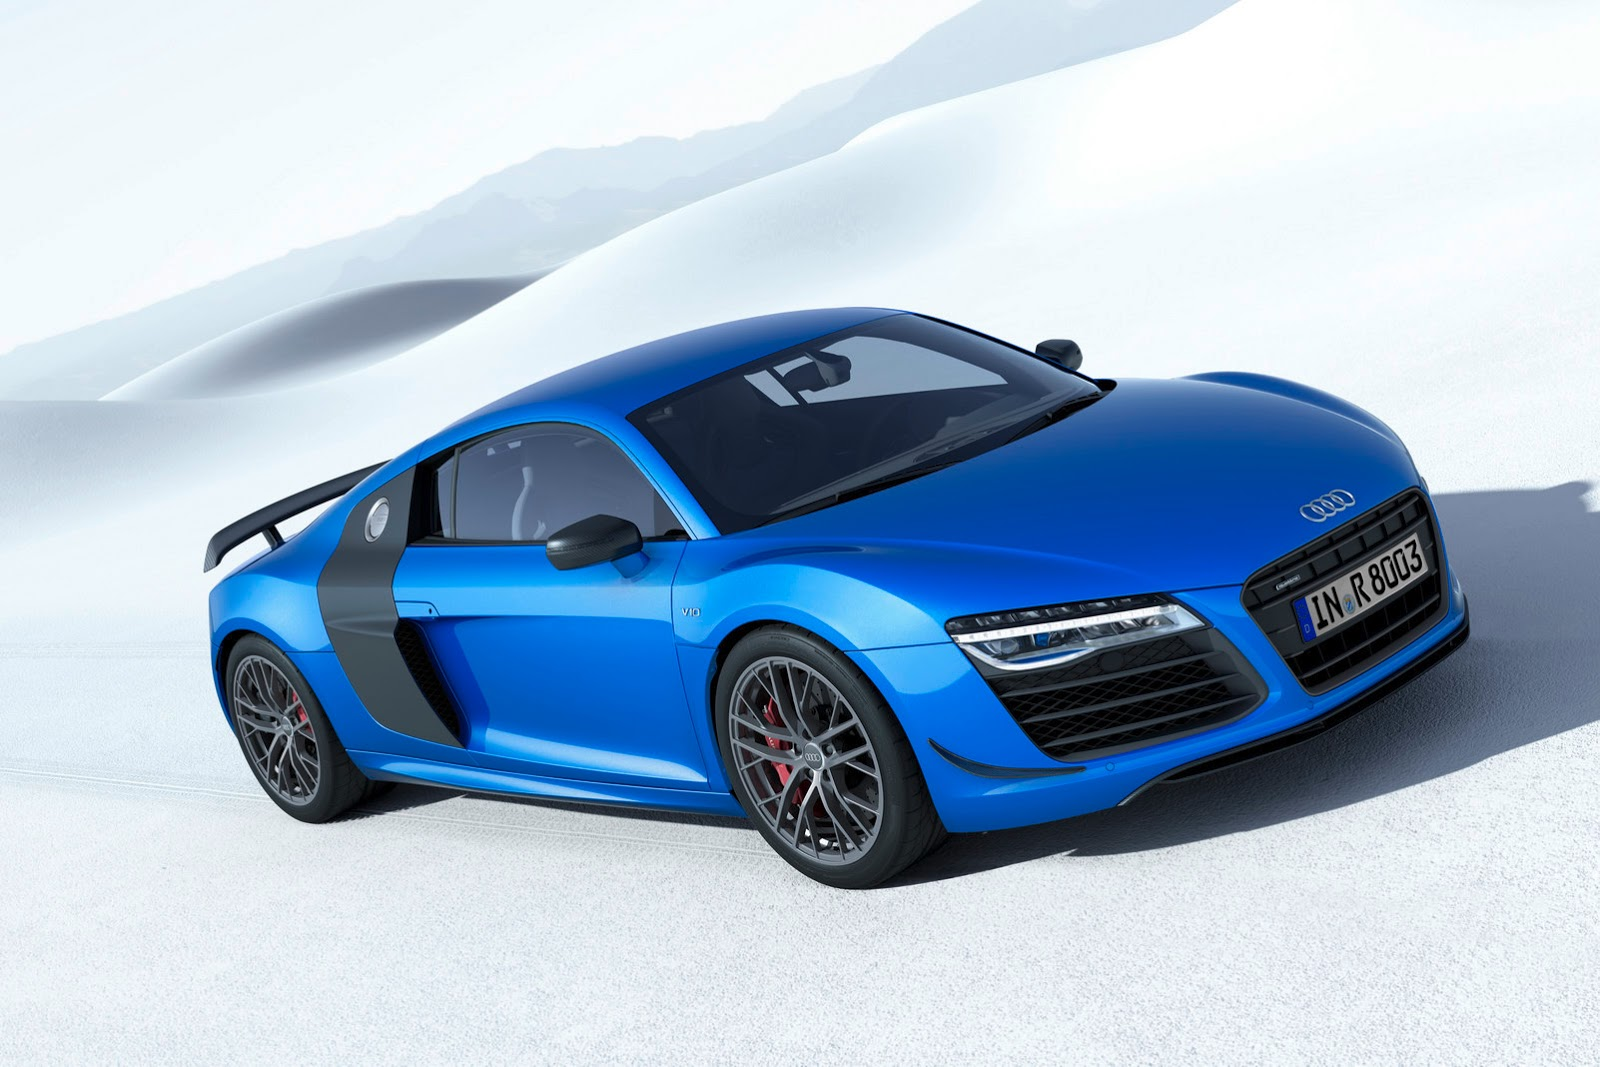 Audi Reveals R8 LMX, Takes the i8's Laser Headlight Crown ...